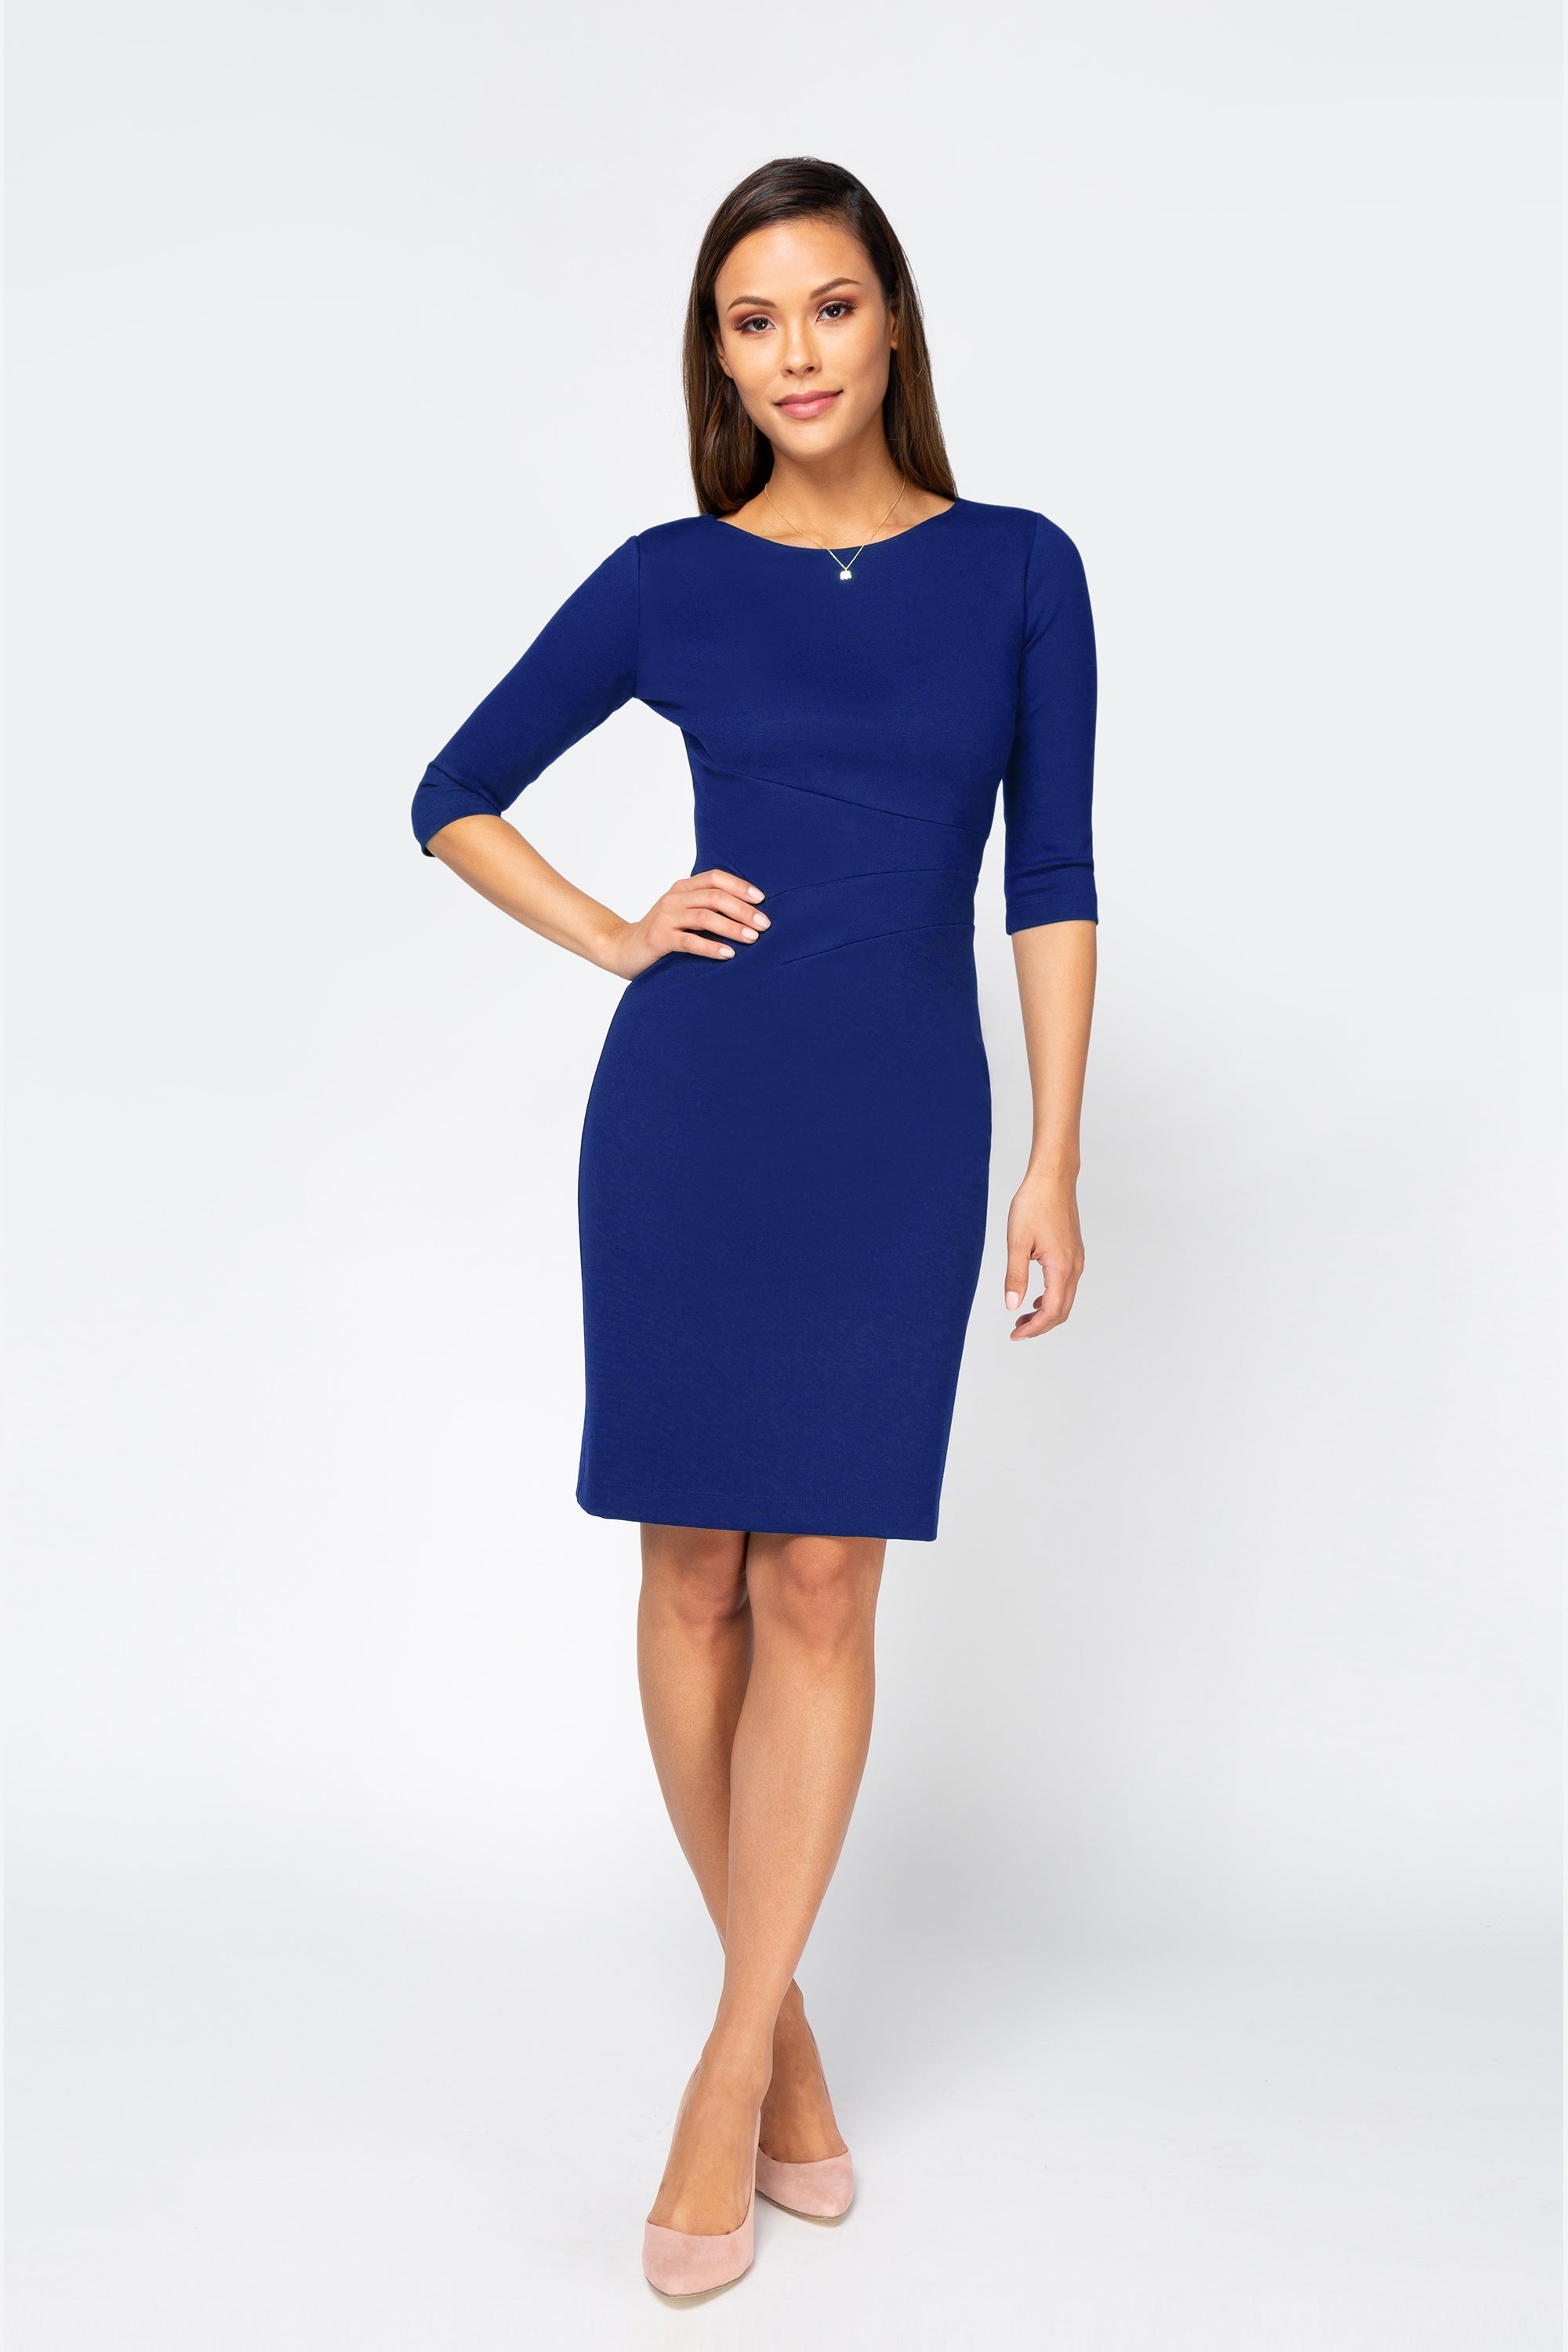 Women's Lydia Dress in Royal Blue | Nora Gardner Front